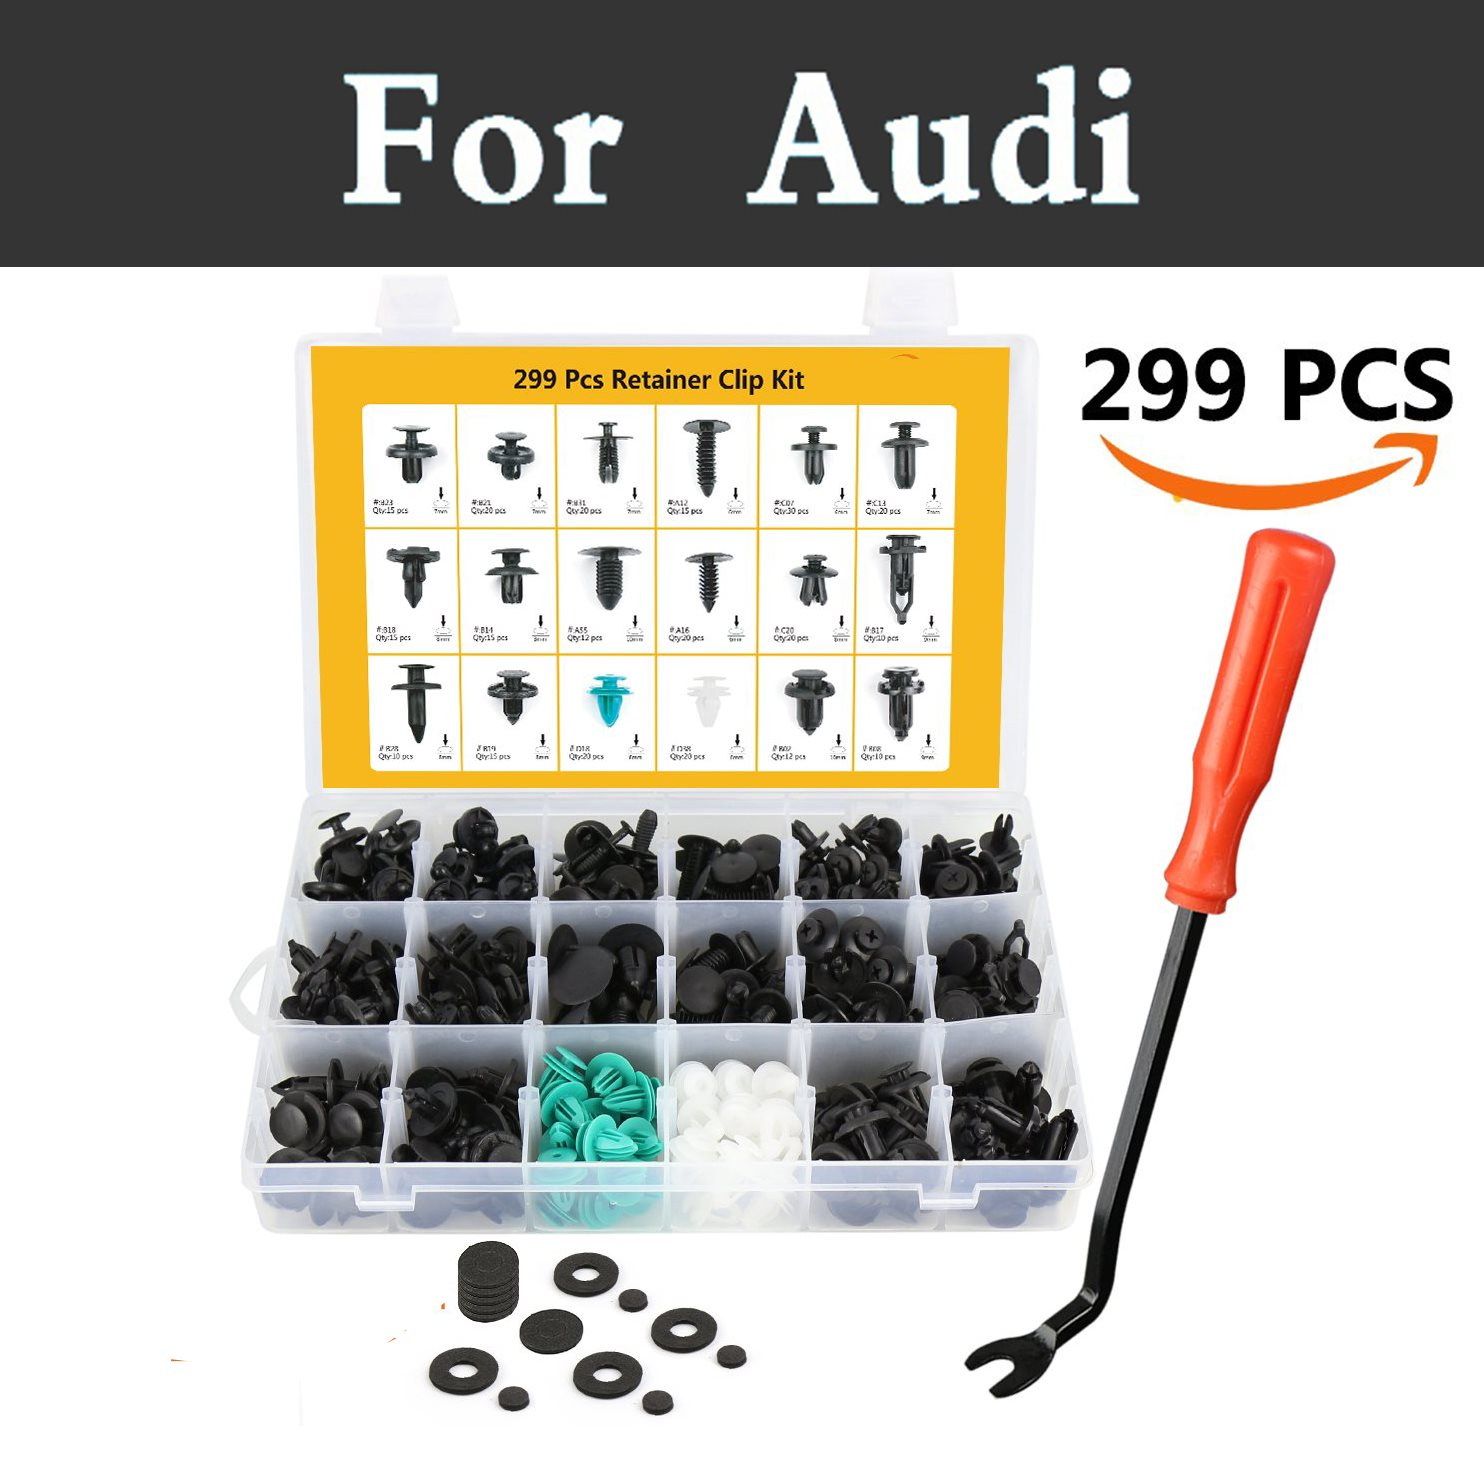 299pcs Car Fastener Remover Panel Trim Clips Kit,18 Most Popular Rivets For Audi A3 A4 A5 A6 A7a8 Q3 Q5 Q7 Body Clips